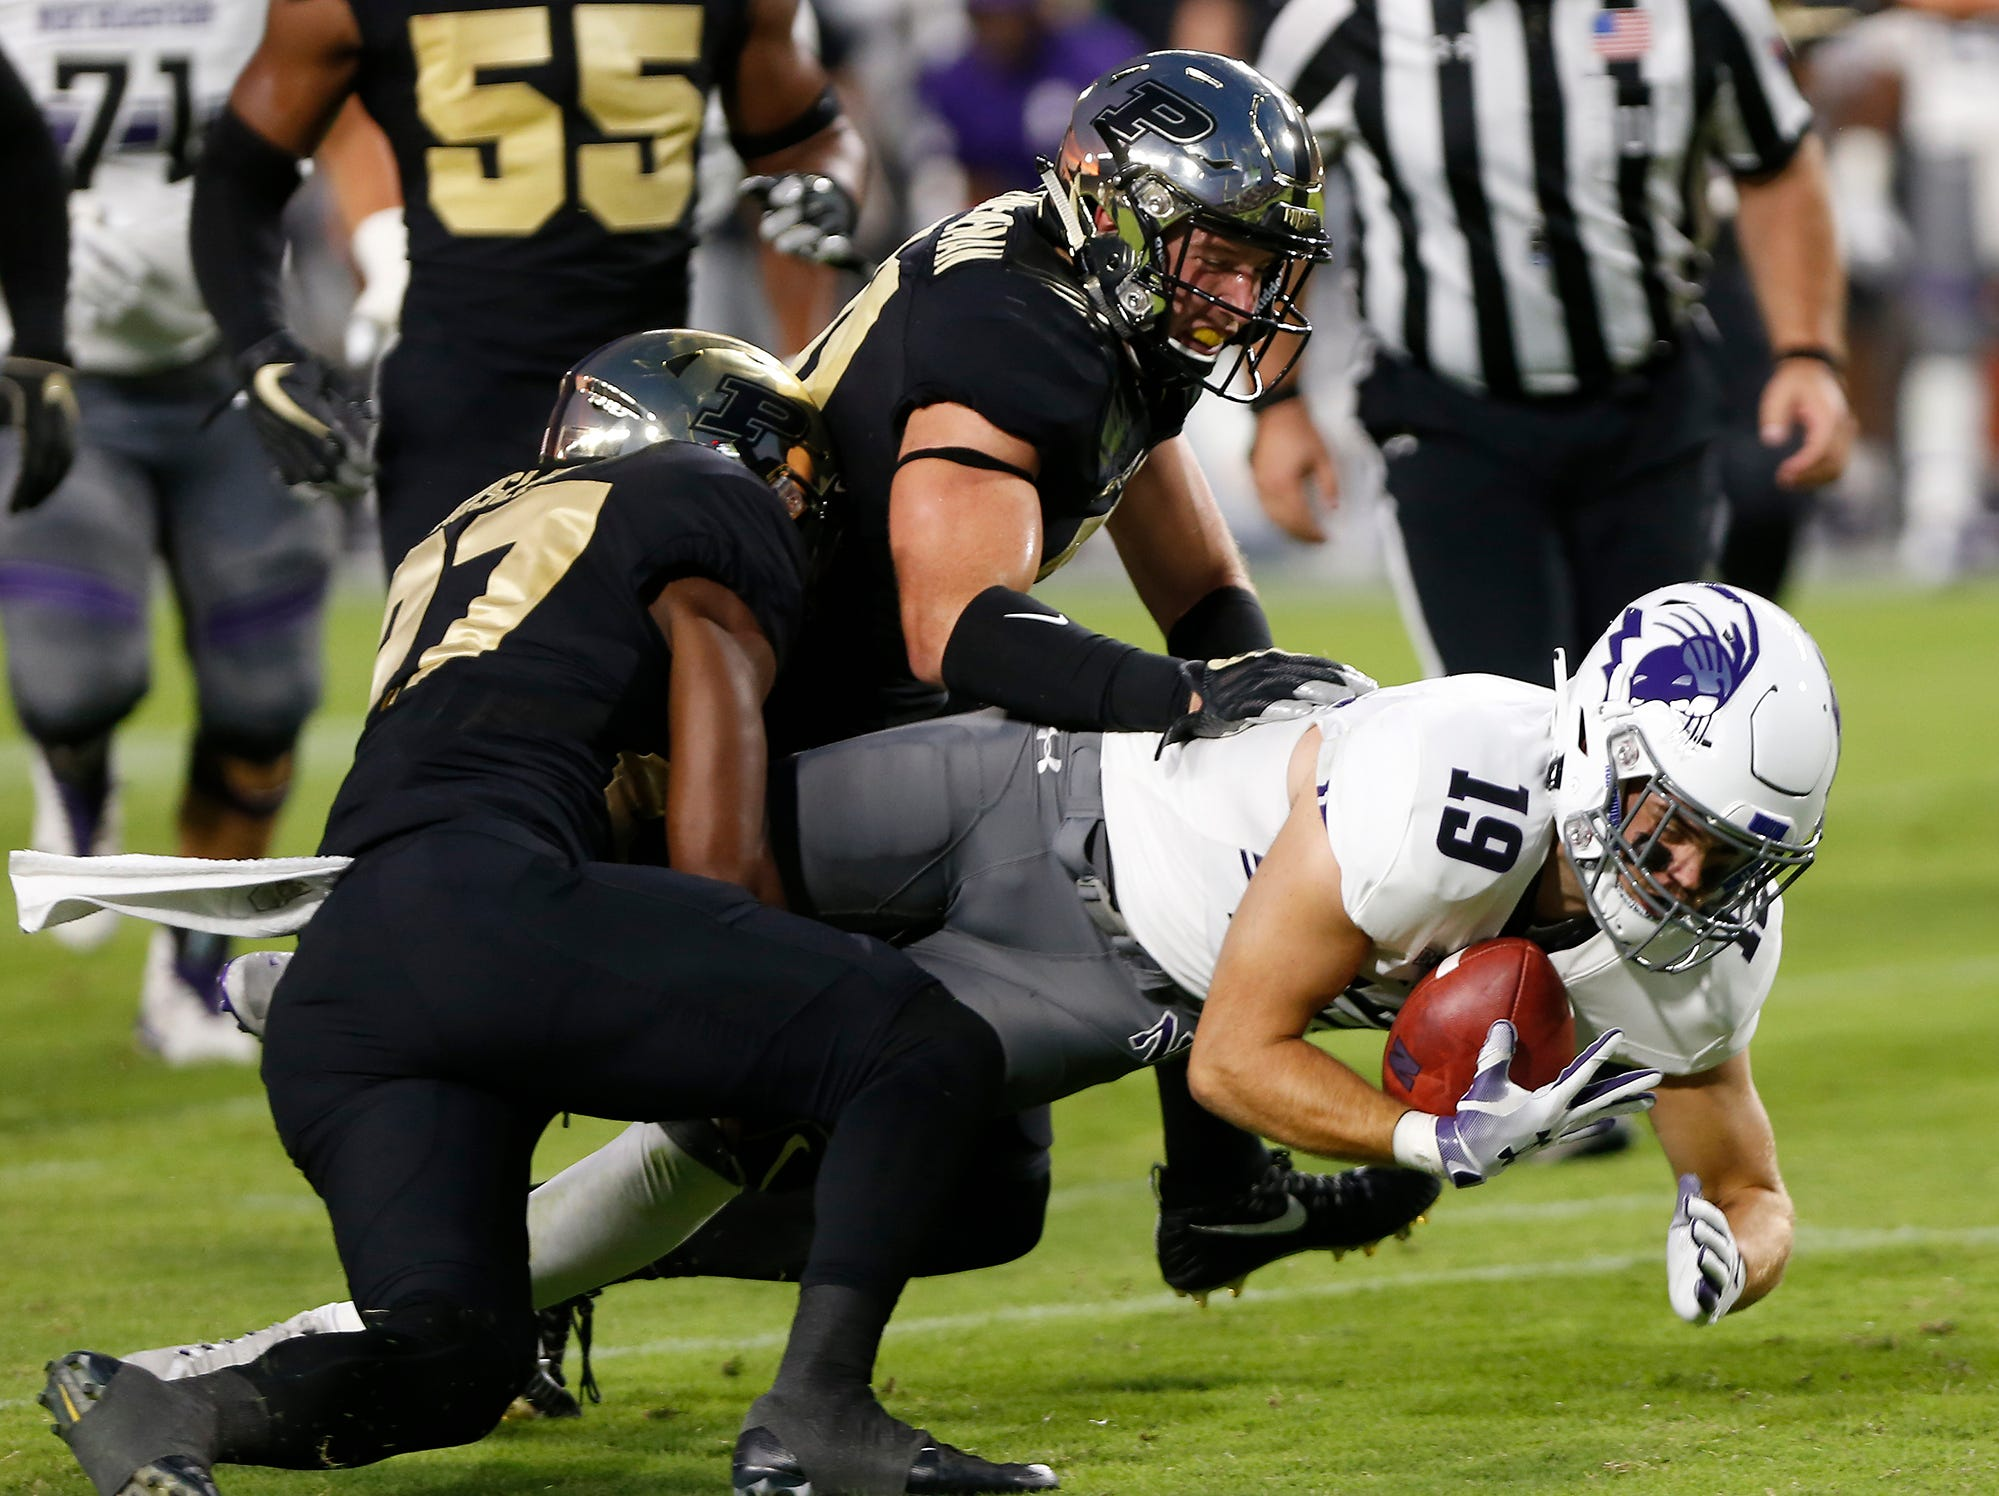 Riley Lees of Northwestern lunges for additional yardage on a carry against Purdue Thursday, August 30, 2018, in West Lafayette.